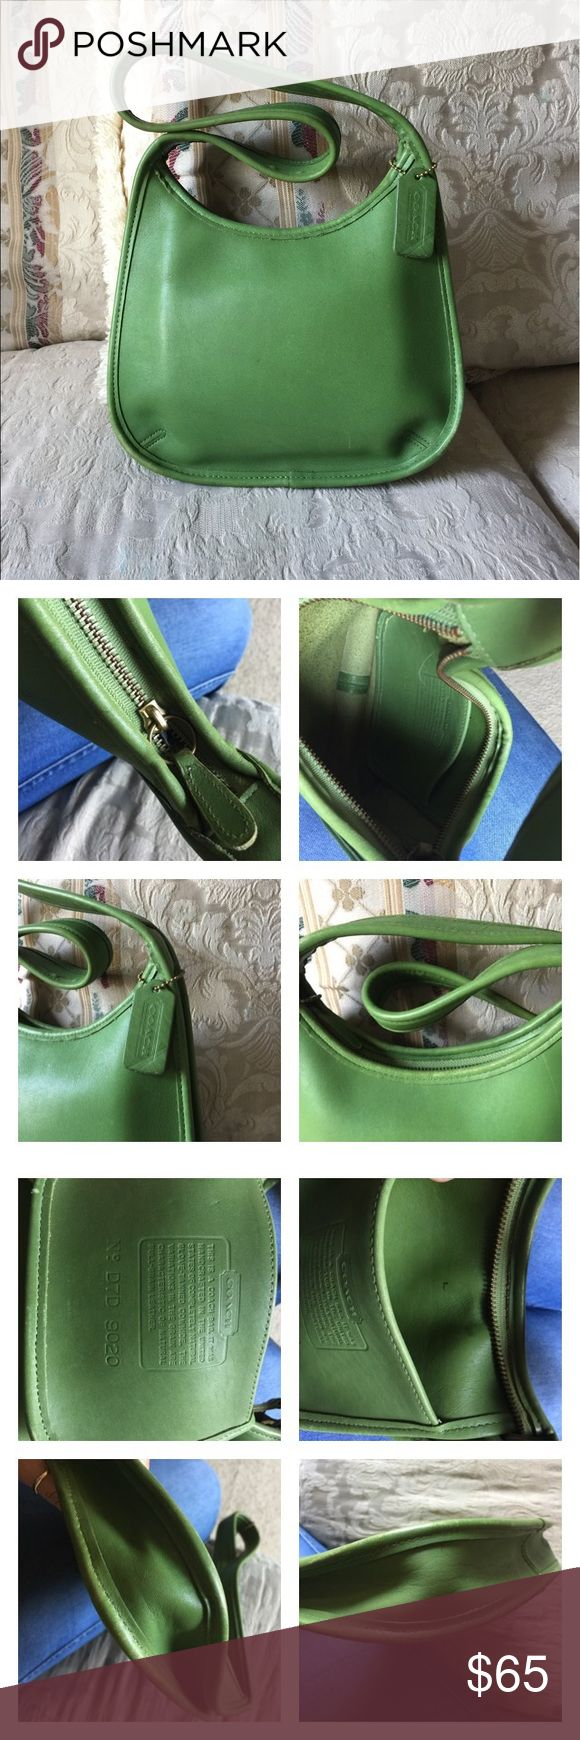 Vintage Coach hobo 9020 Vintage Coach hobo bag in Very good Vintage condition, minor scuffs on corners, free of major scratches and scars.. leather is in GREAT condition, no soils clean inside and out..a few pen marks typical. AUTHENTIC pls ask all questions prior to 😊 Coach Bags Hobos